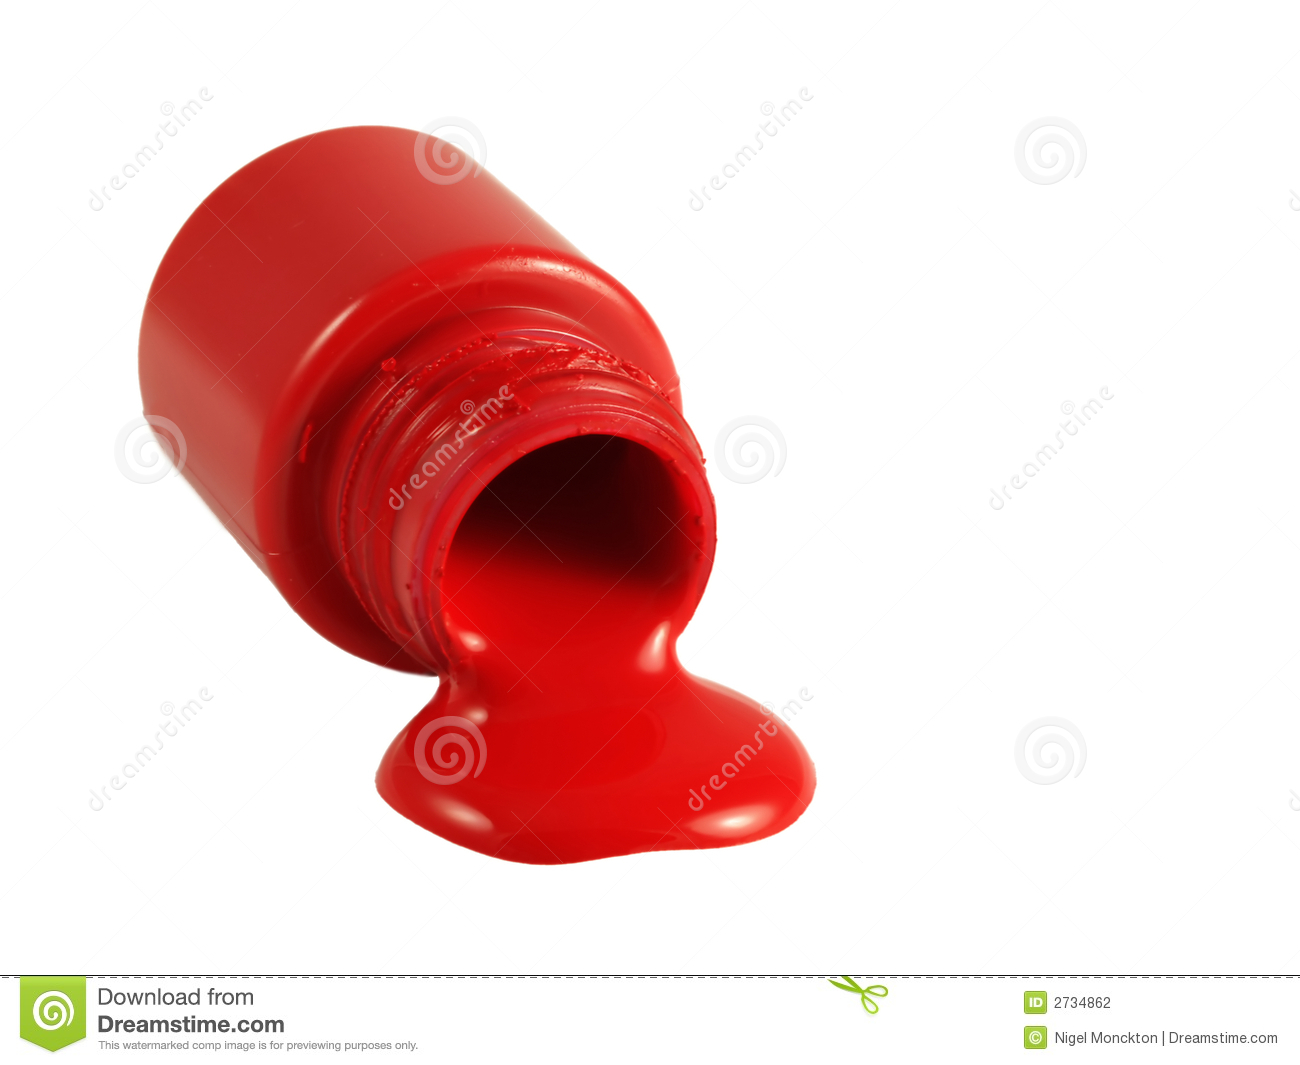 Dreamstime Red Acrylic Paint